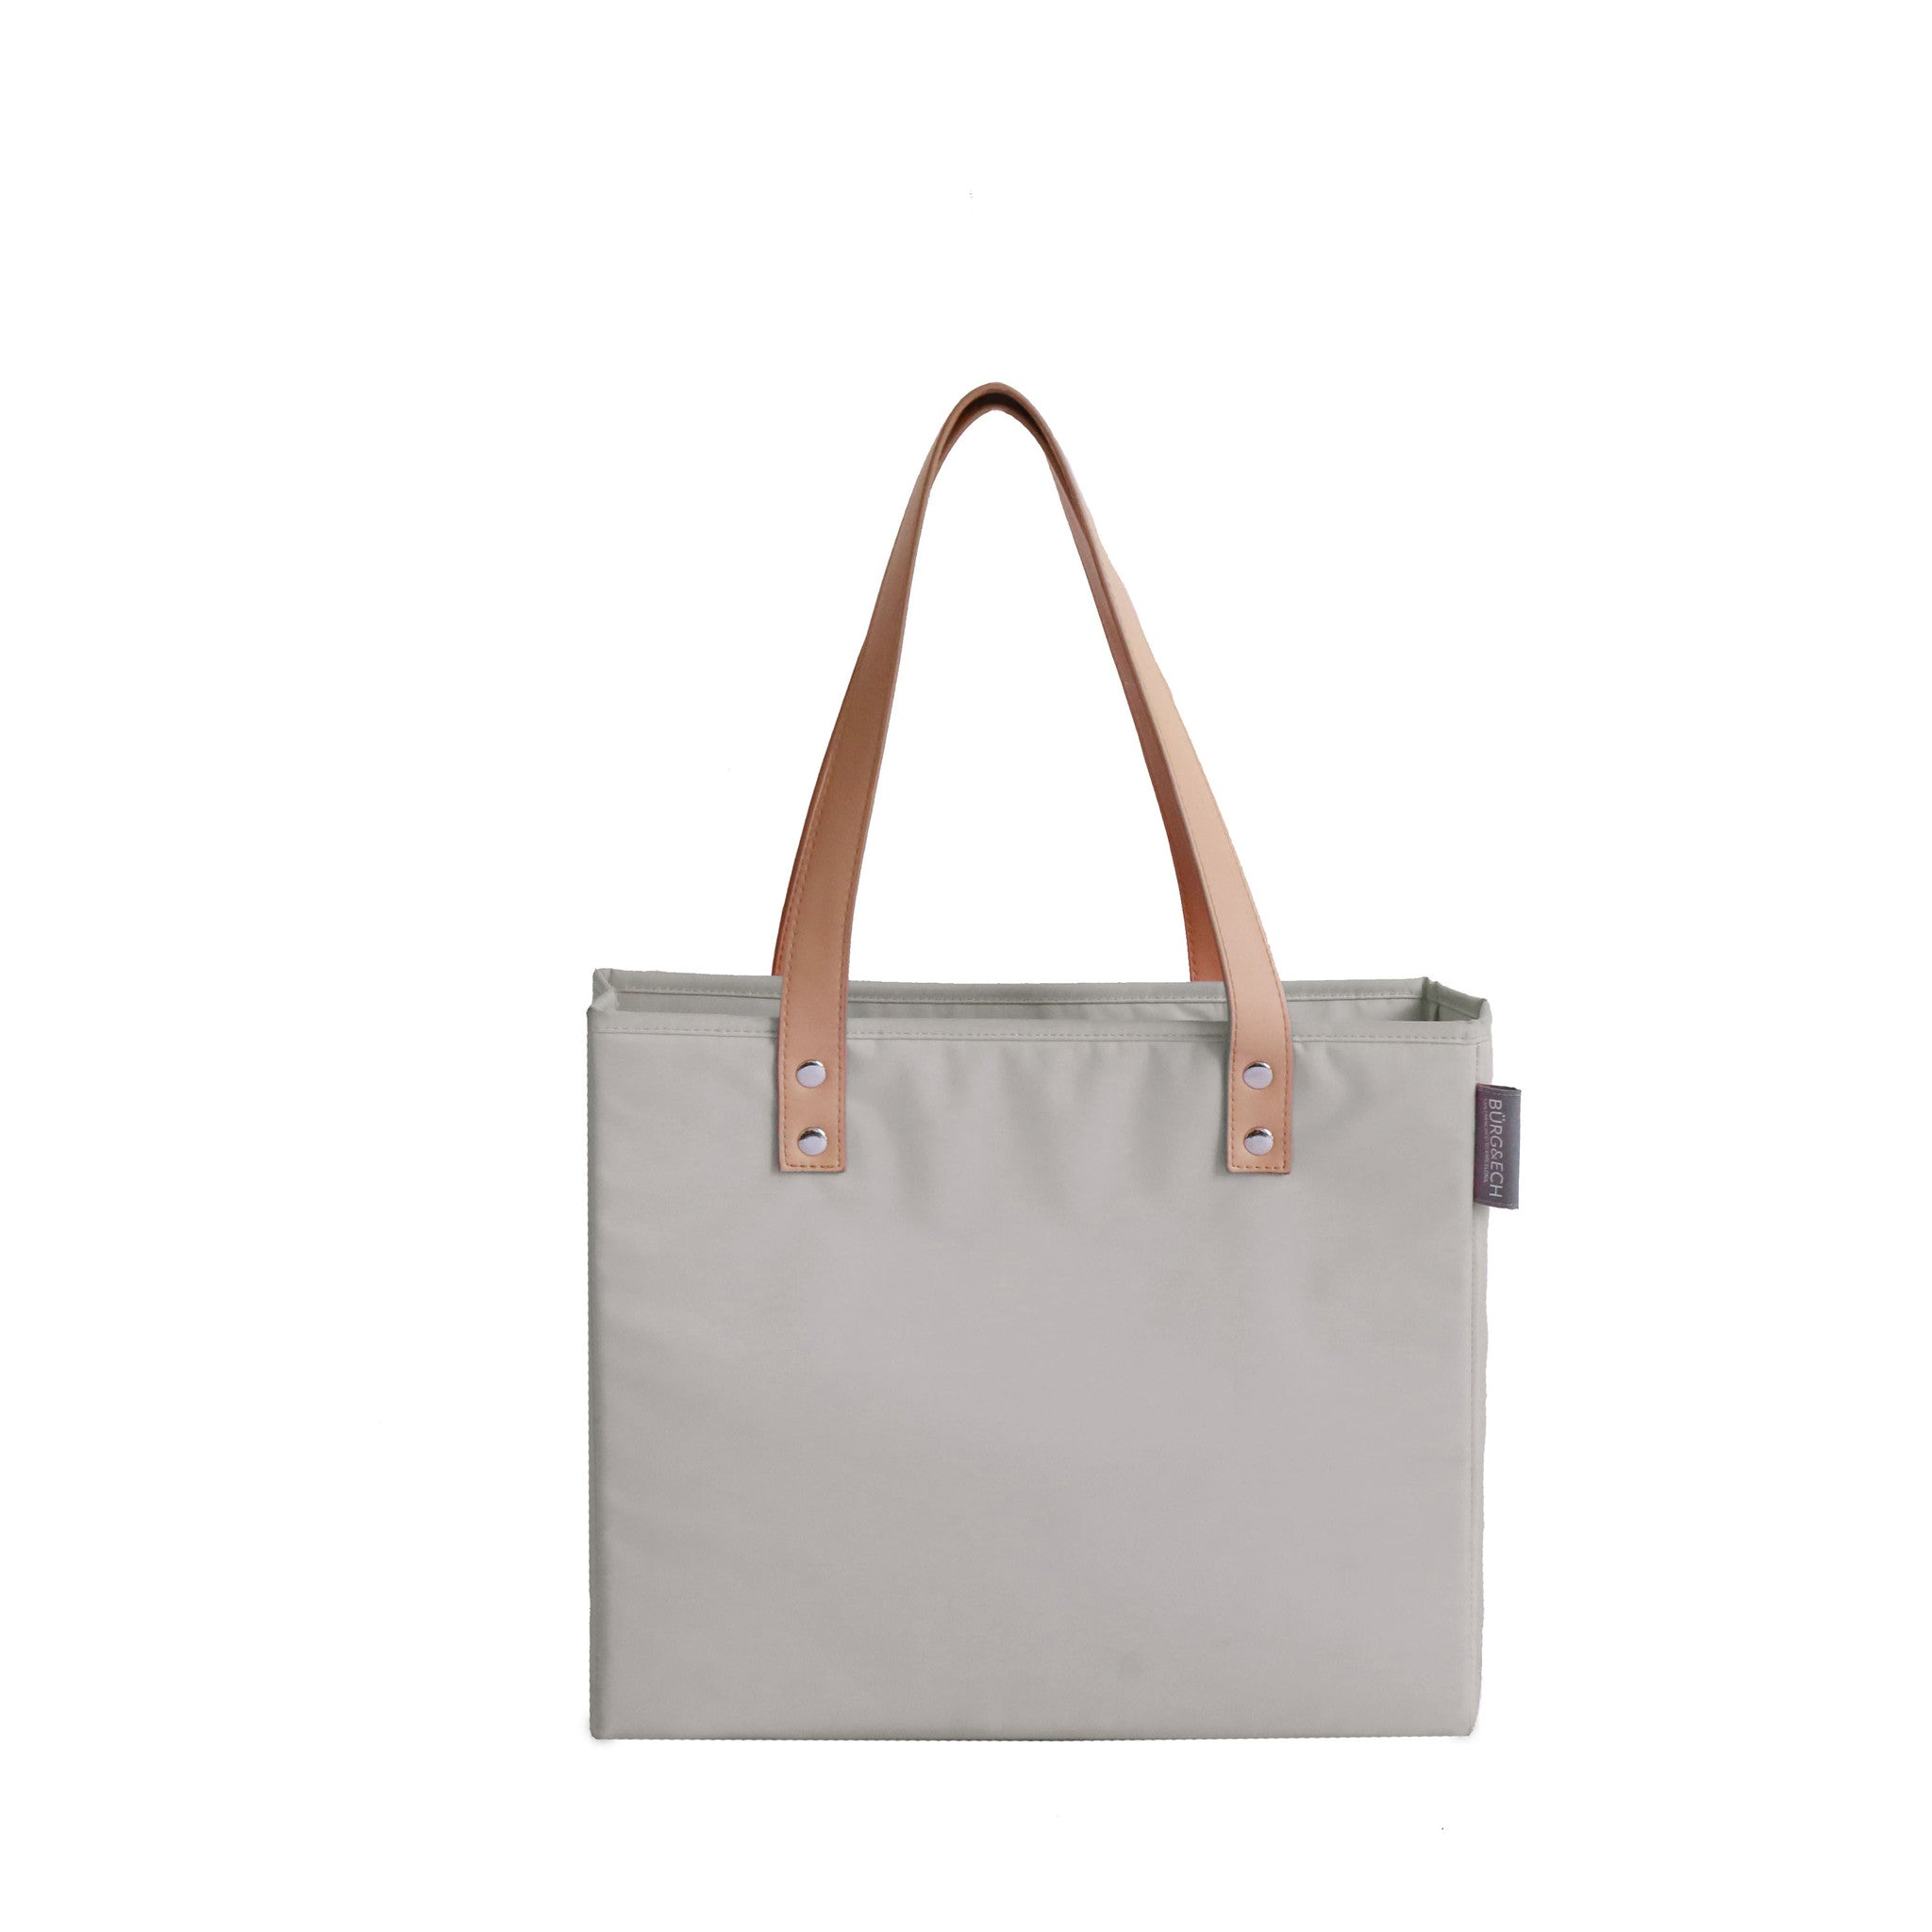 BUTTERFLY TOTE - NEO GREY